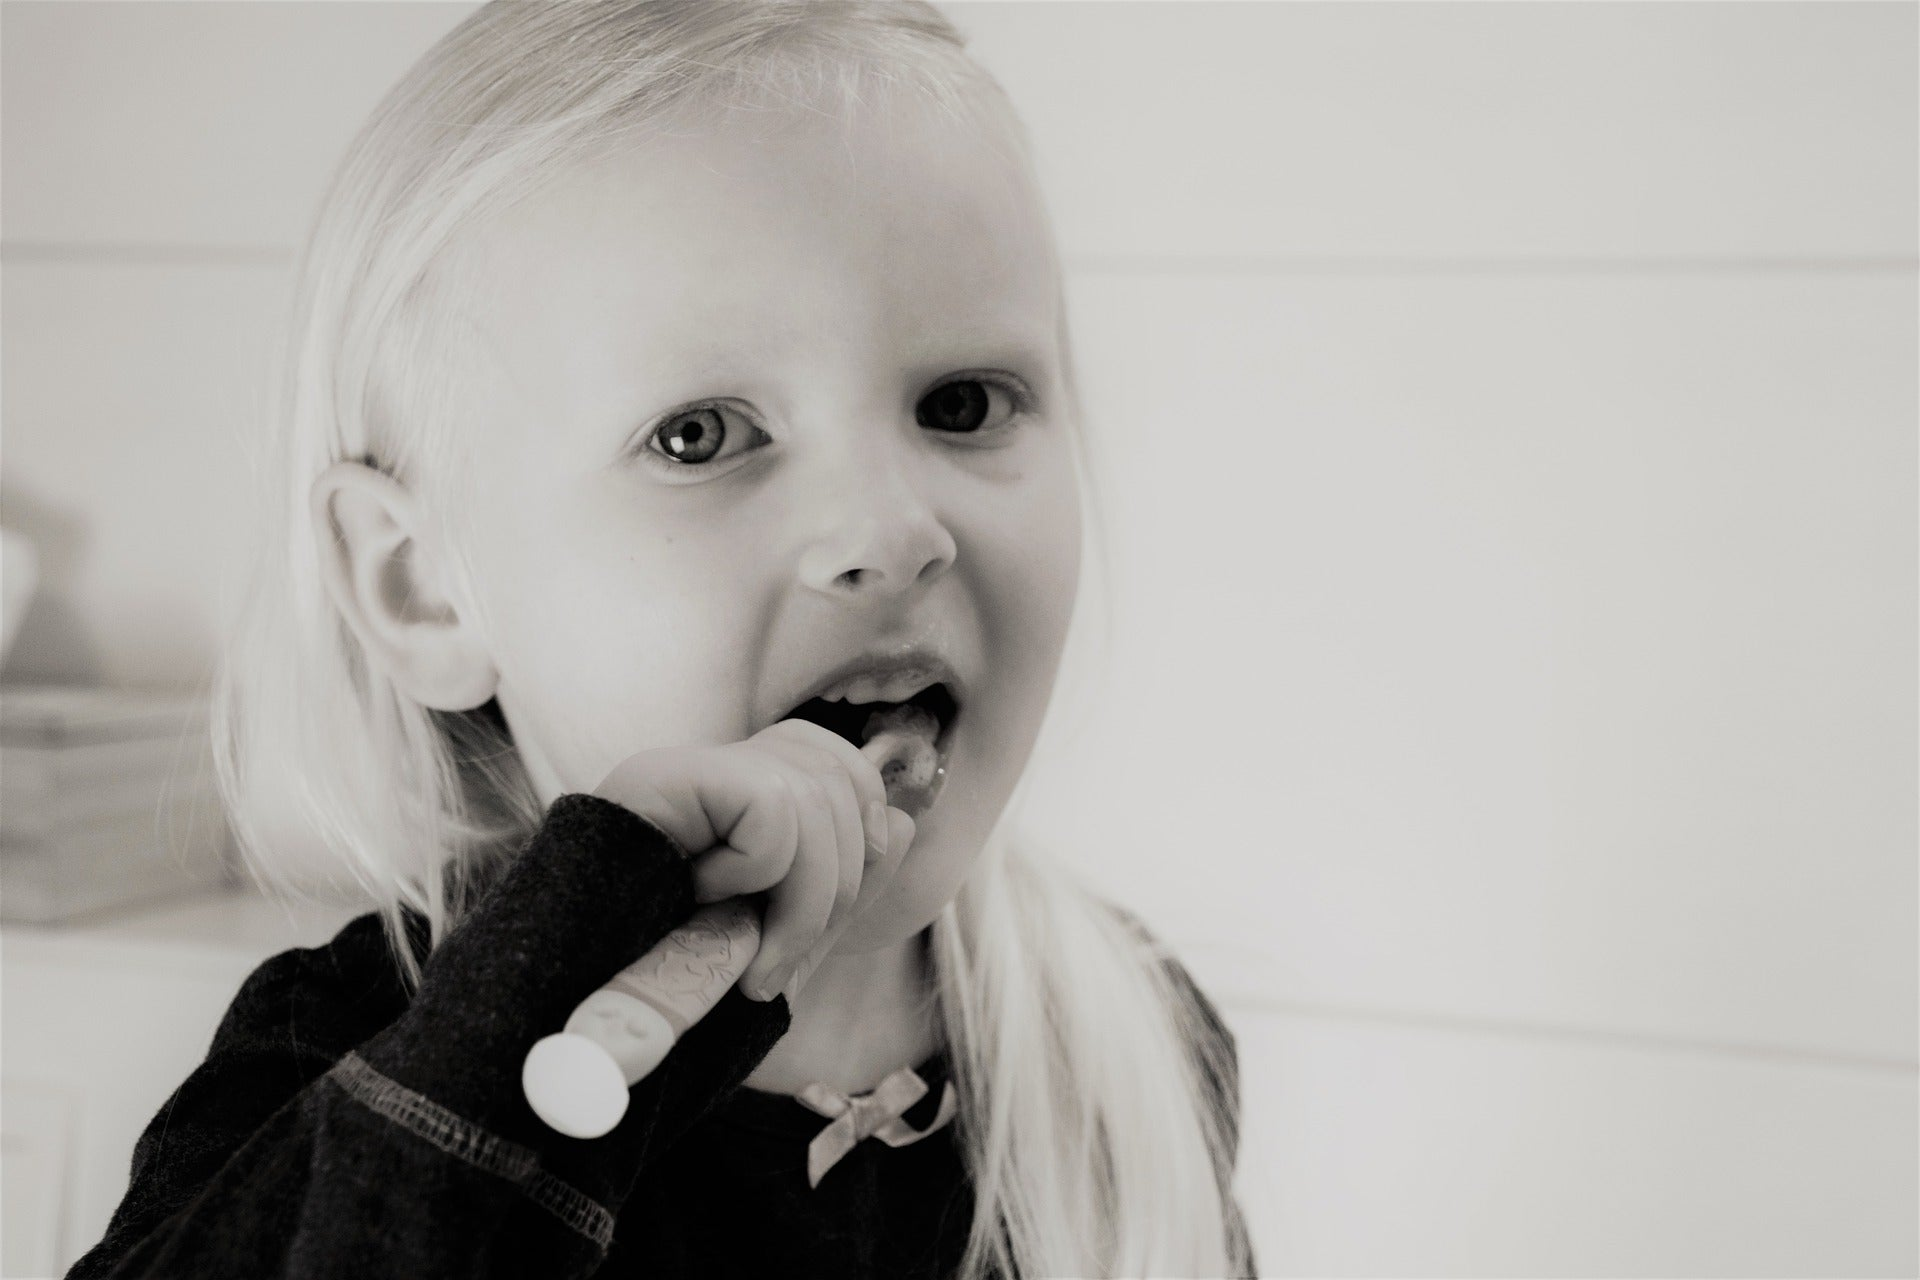 Black and white image of blonde little girl brushing her teeth, for AutoBrush